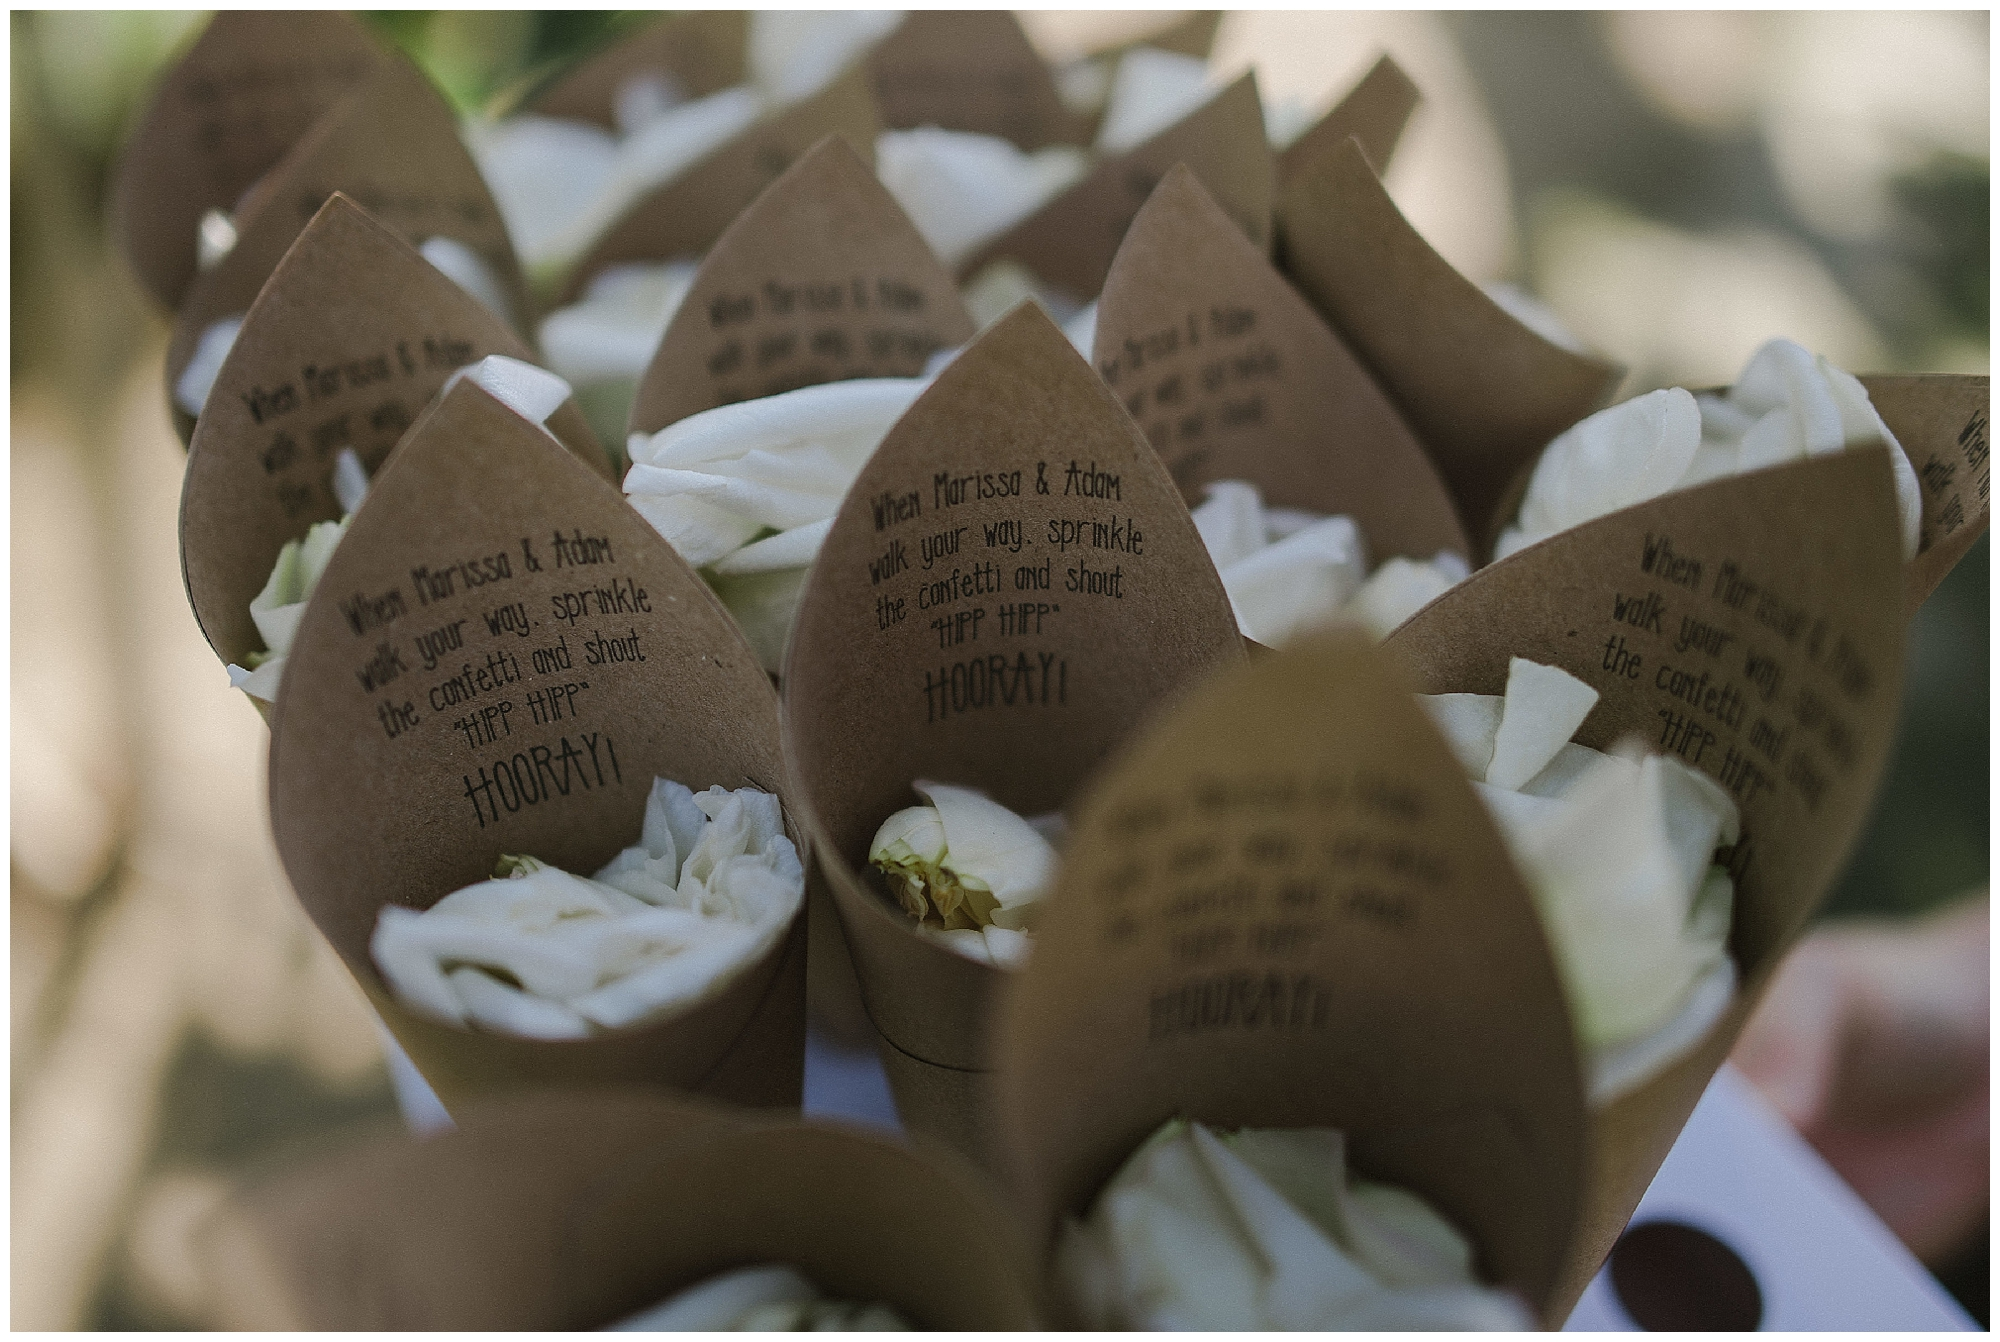 We love the detailed message for the guests to throw confetti on their beautiful Cabo wedding day!